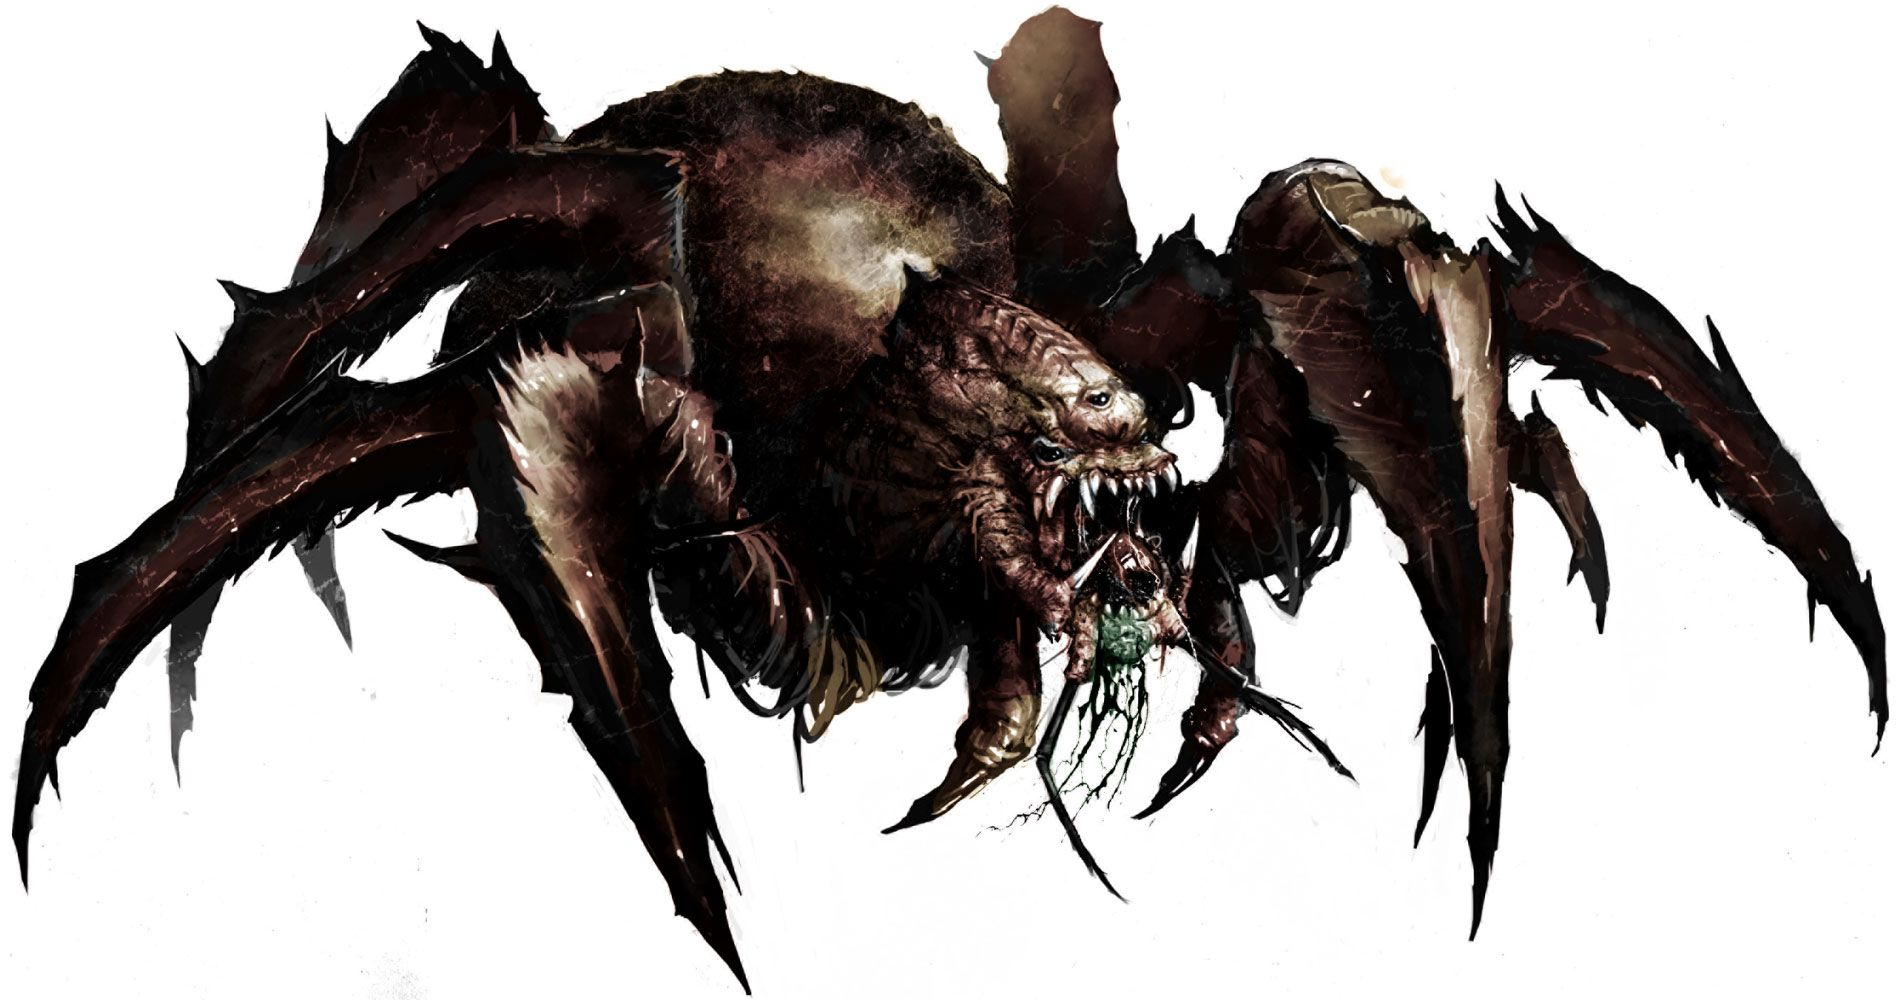 pathfinder giant spider - Google Search